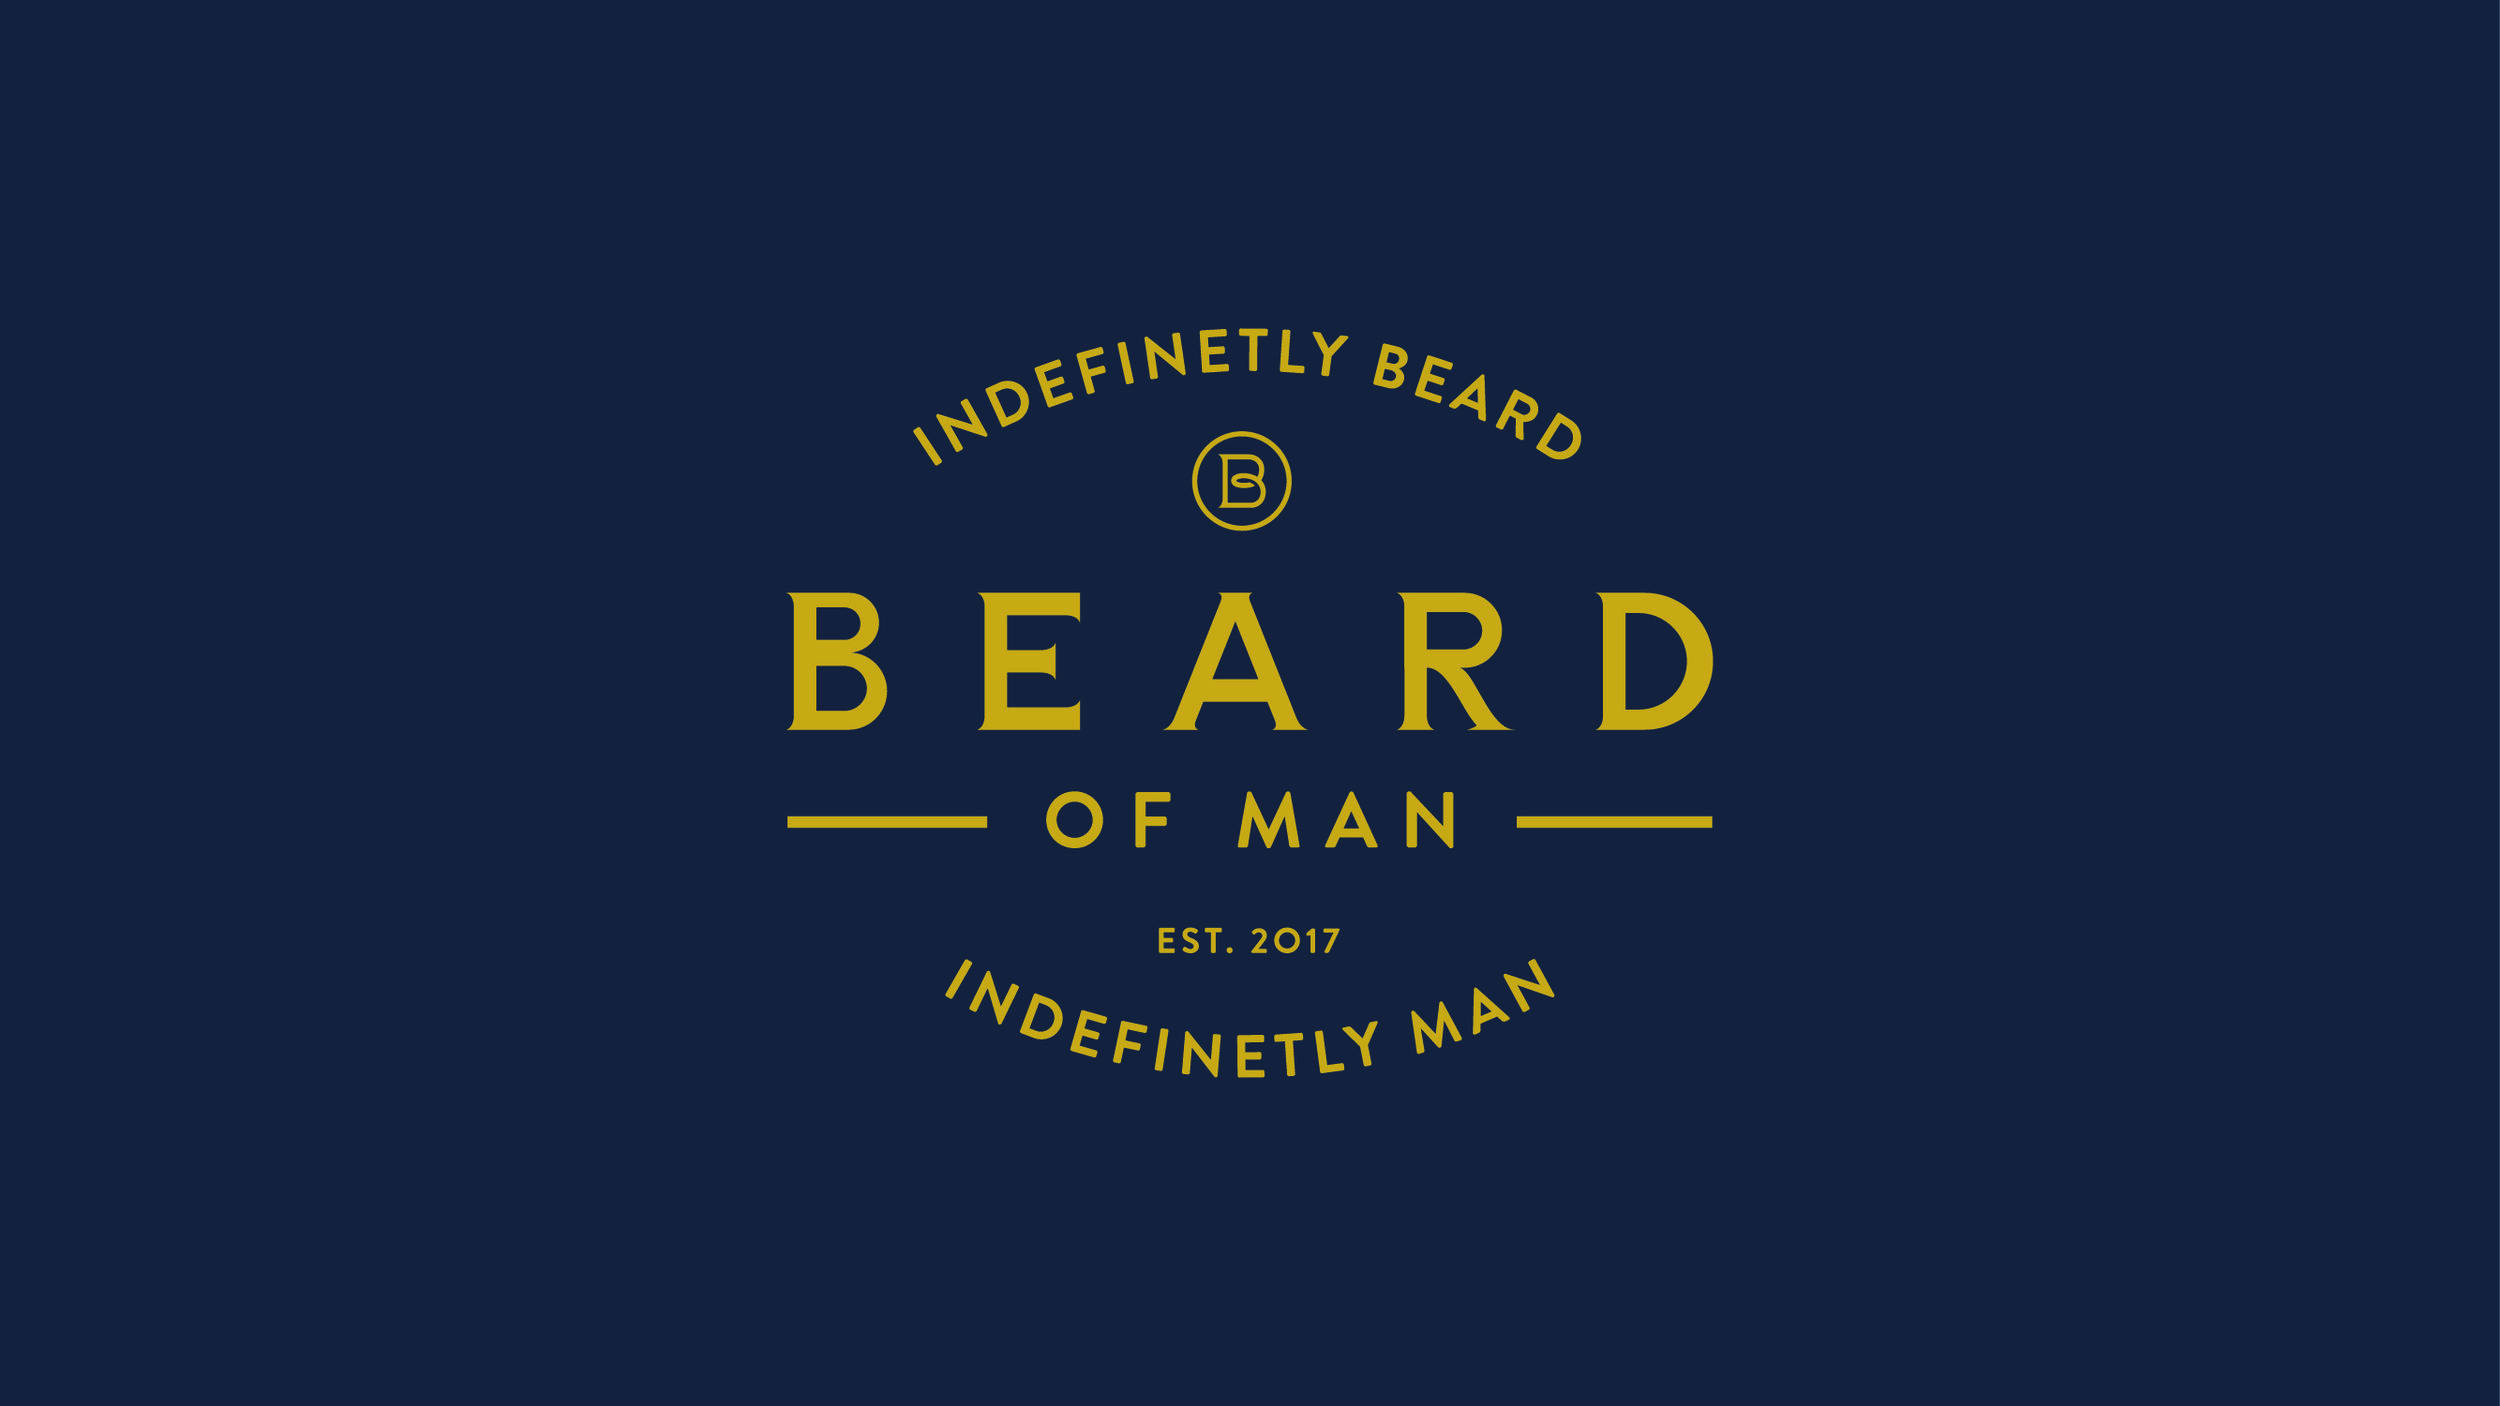 beard of manArtboard 1Final Preview.jpg